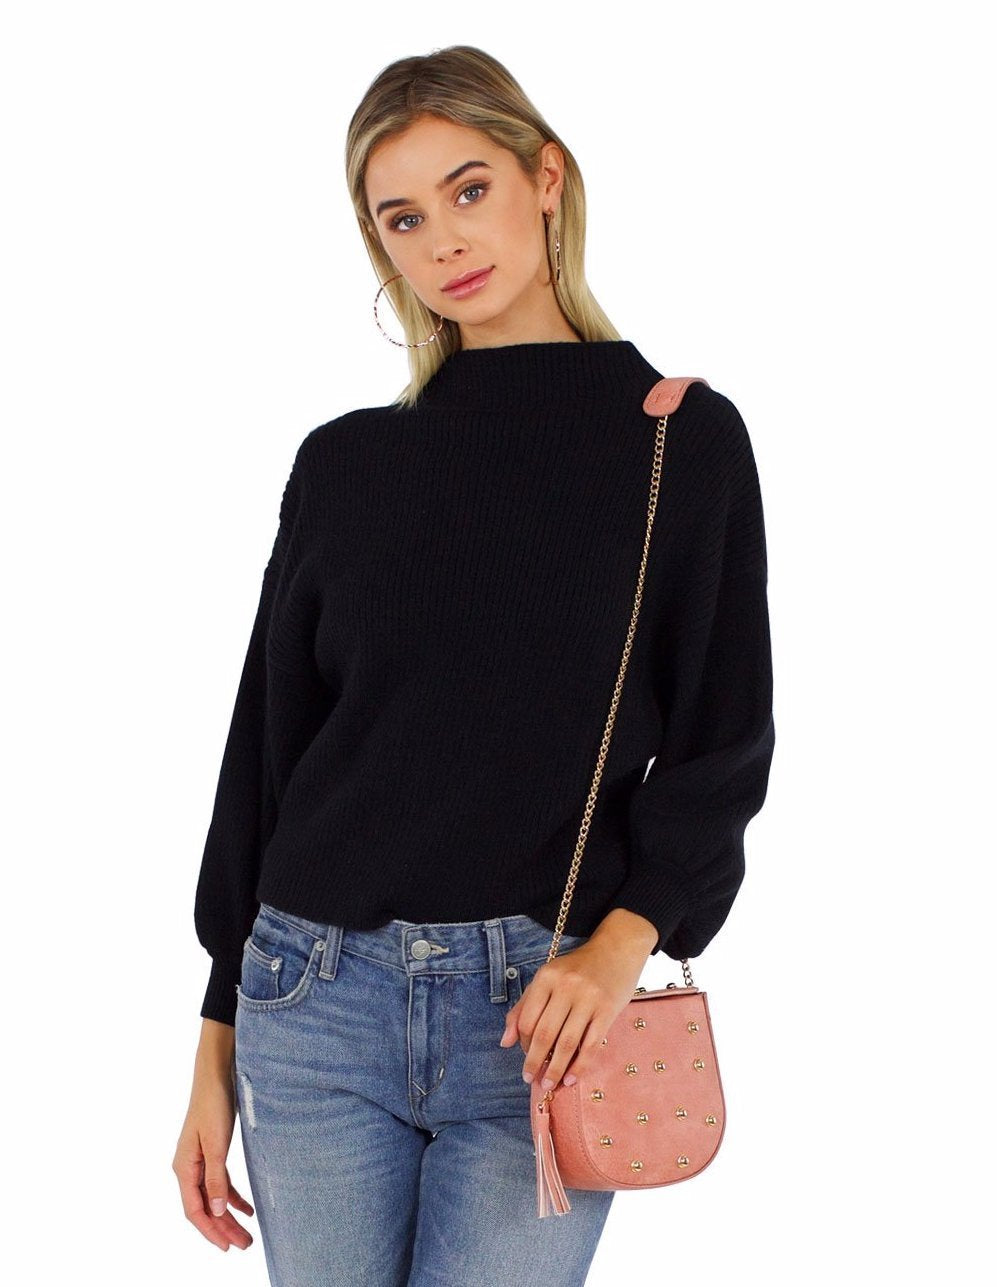 Girl outfit in a top rental from Line & Dot called Balloon Sleeve Pullover Sweater